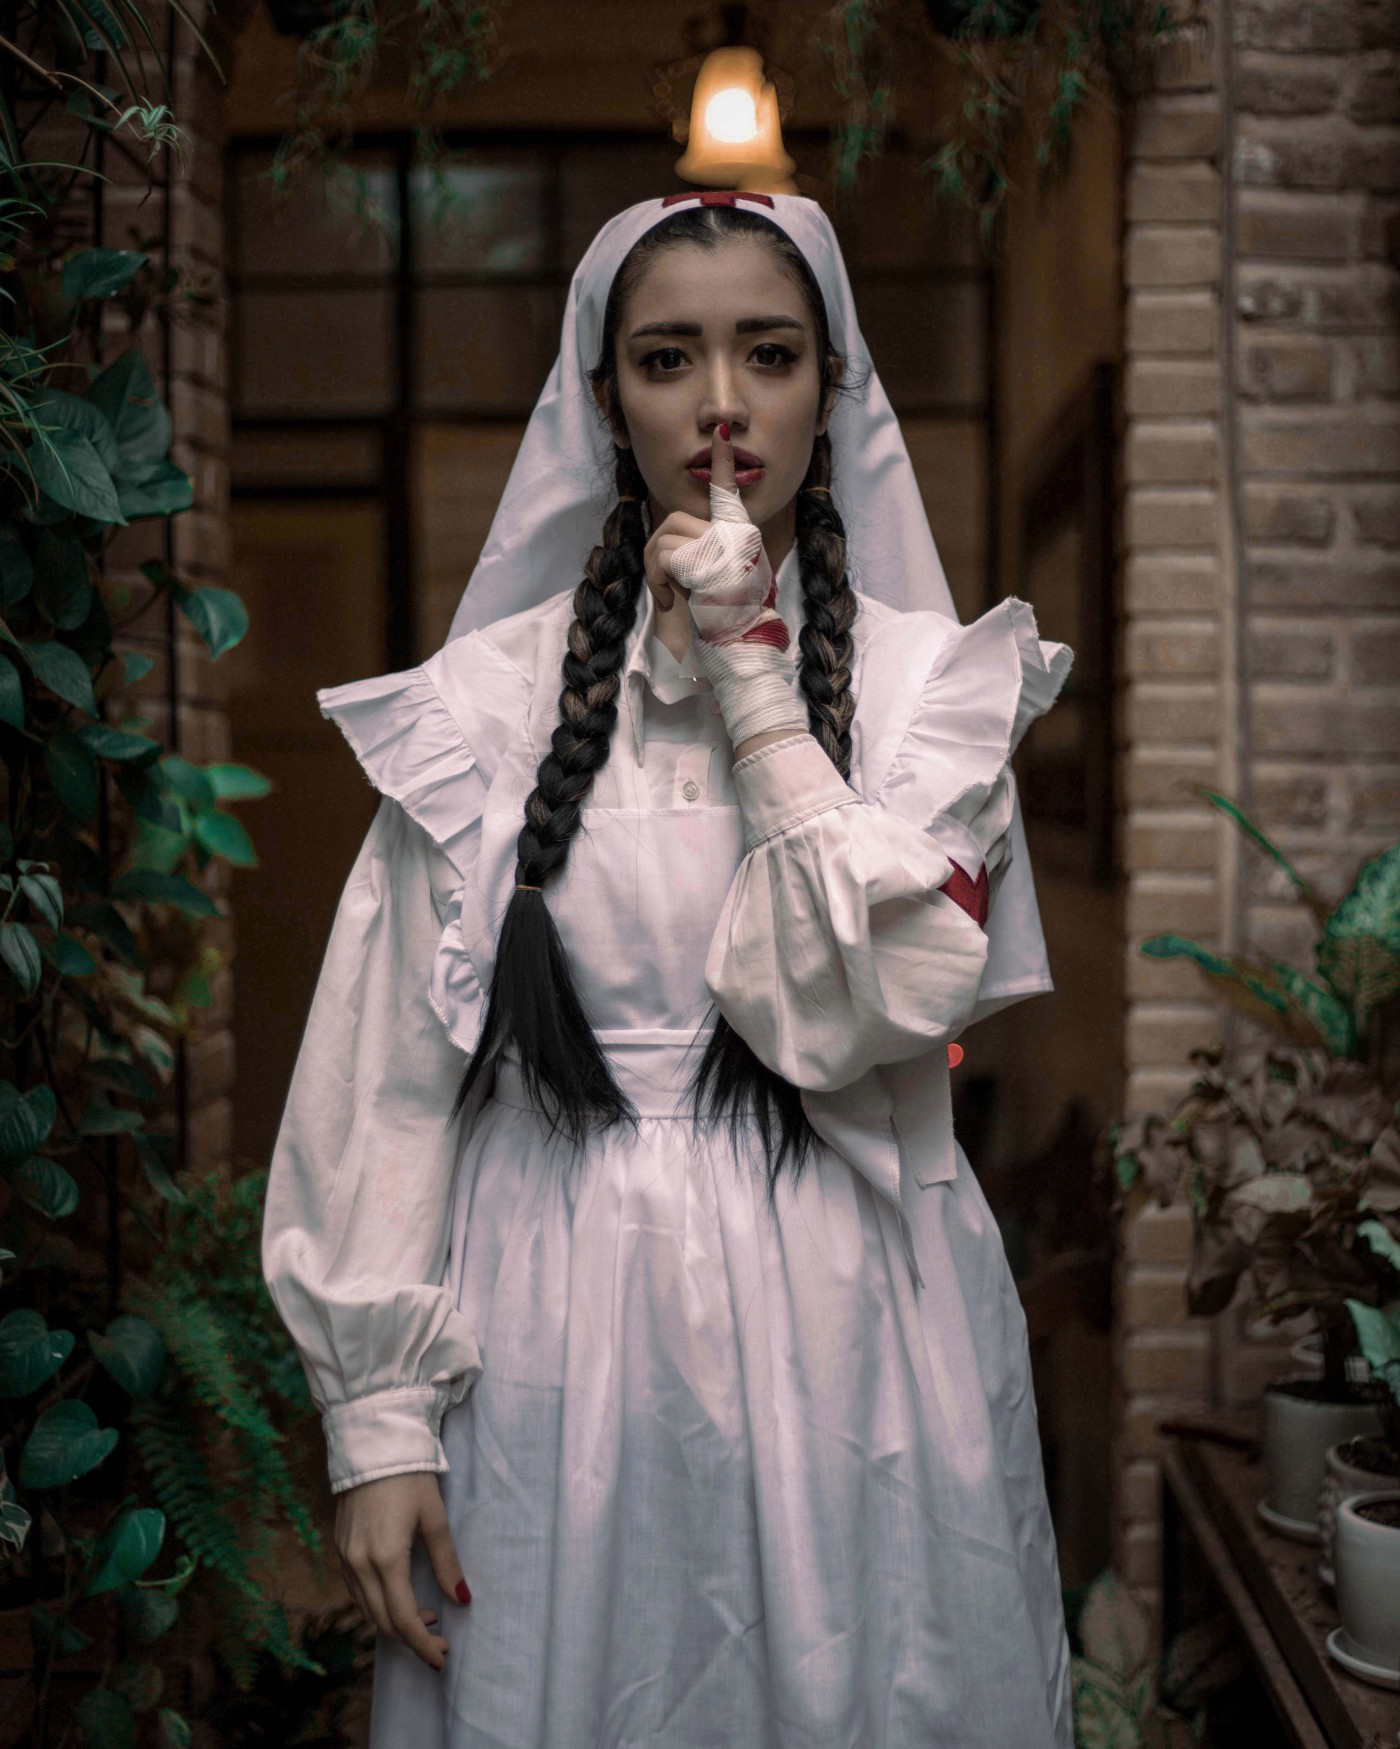 A woman in a nurse costume with two long braids in her hair presses her fingers to her lips, somewhat provocatively